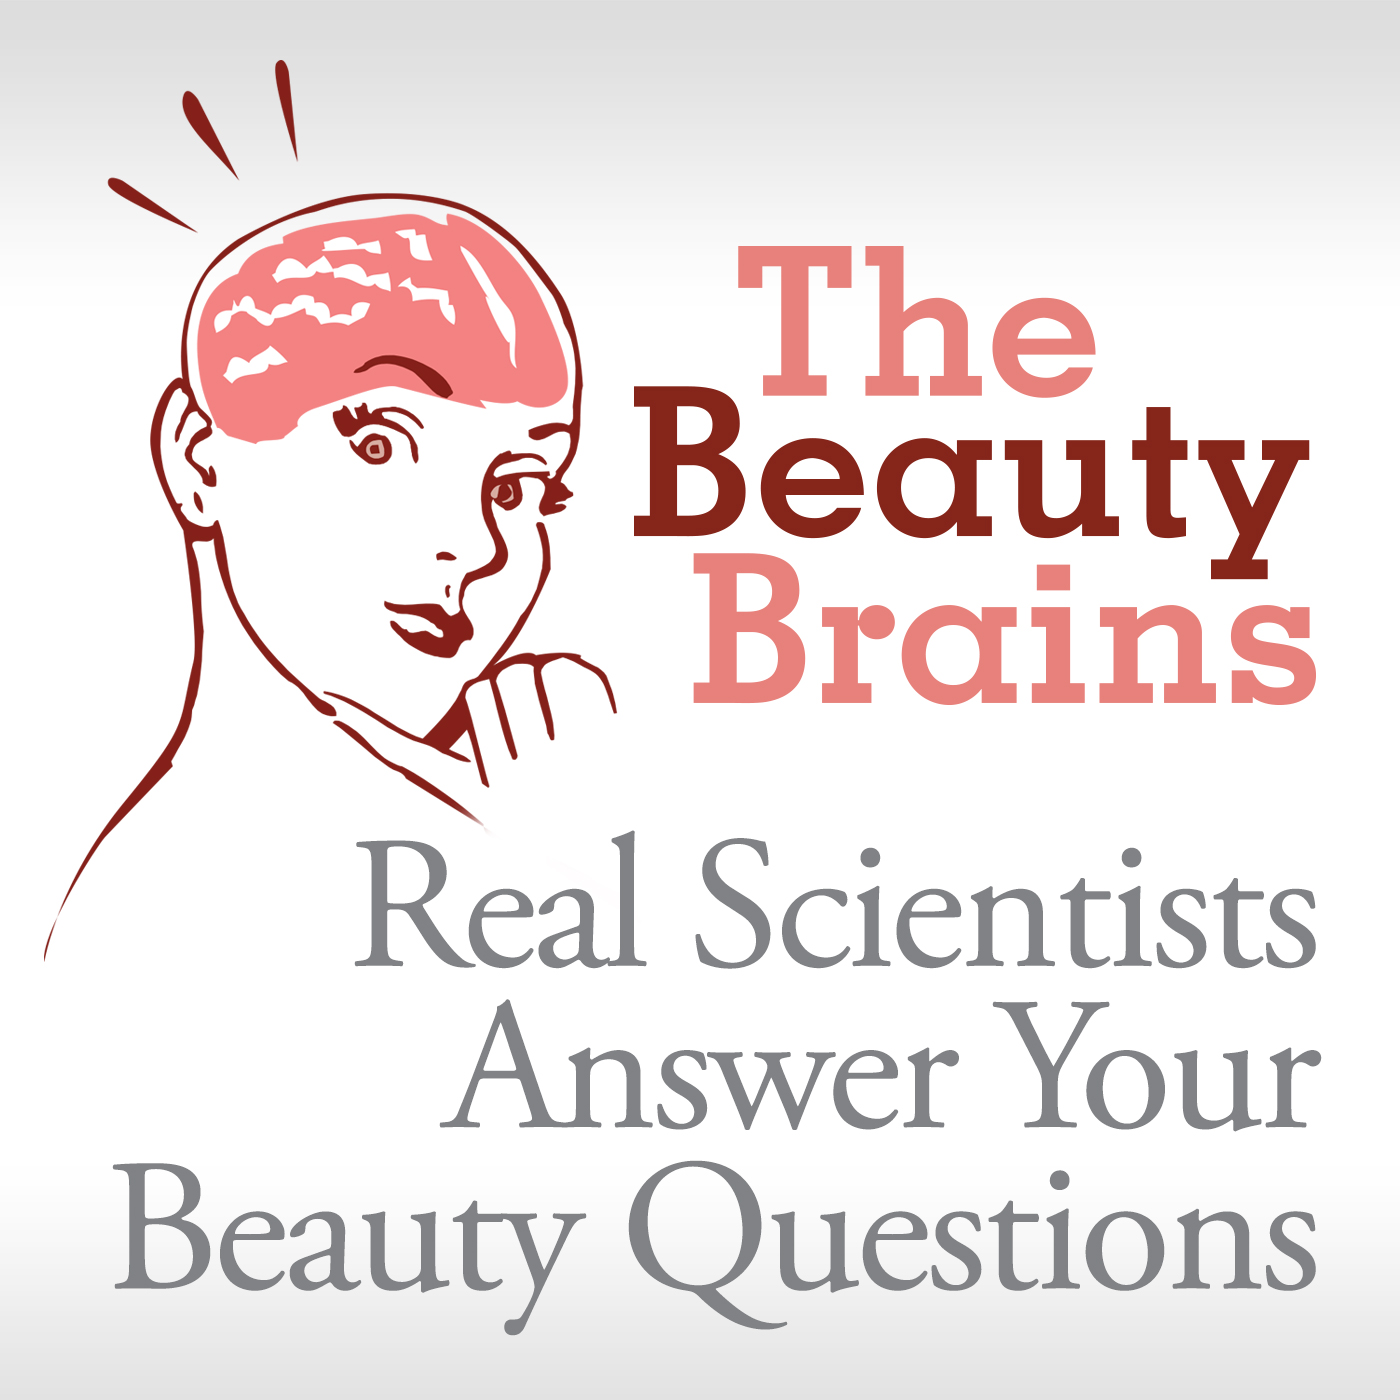 Real Scientists Answer Your Beauty Questions…